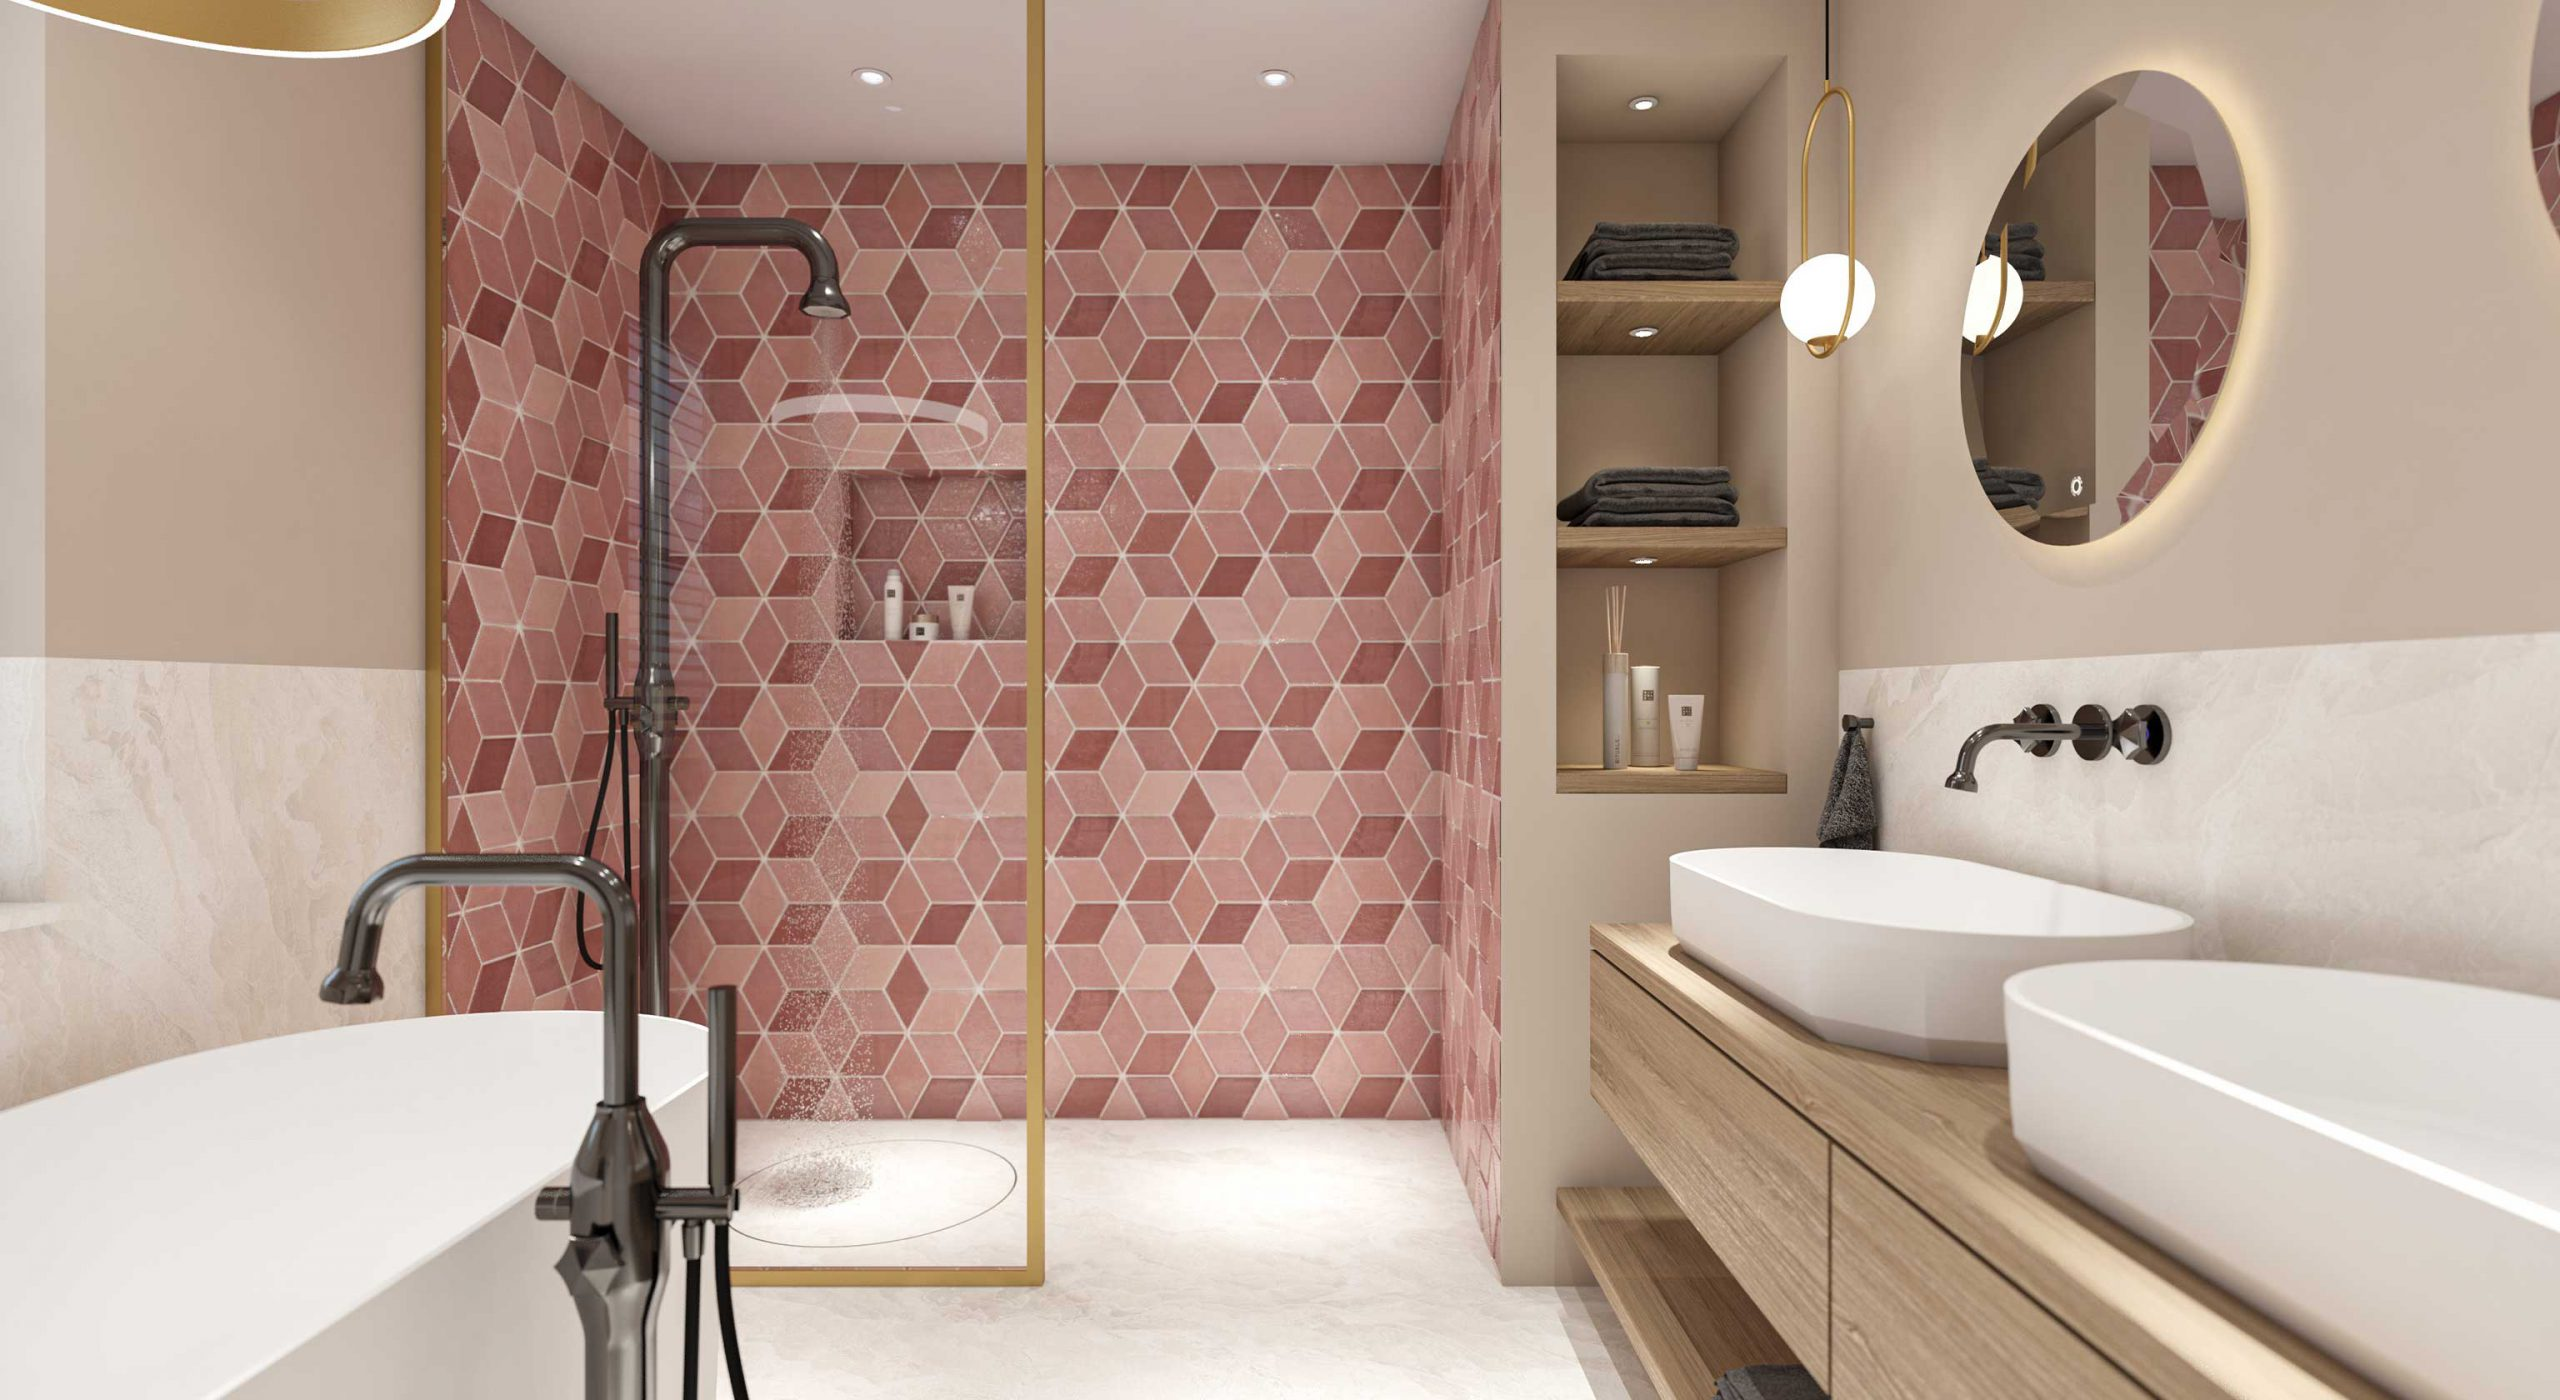 Jee O Unique Bathrooms We Energise Your Moments